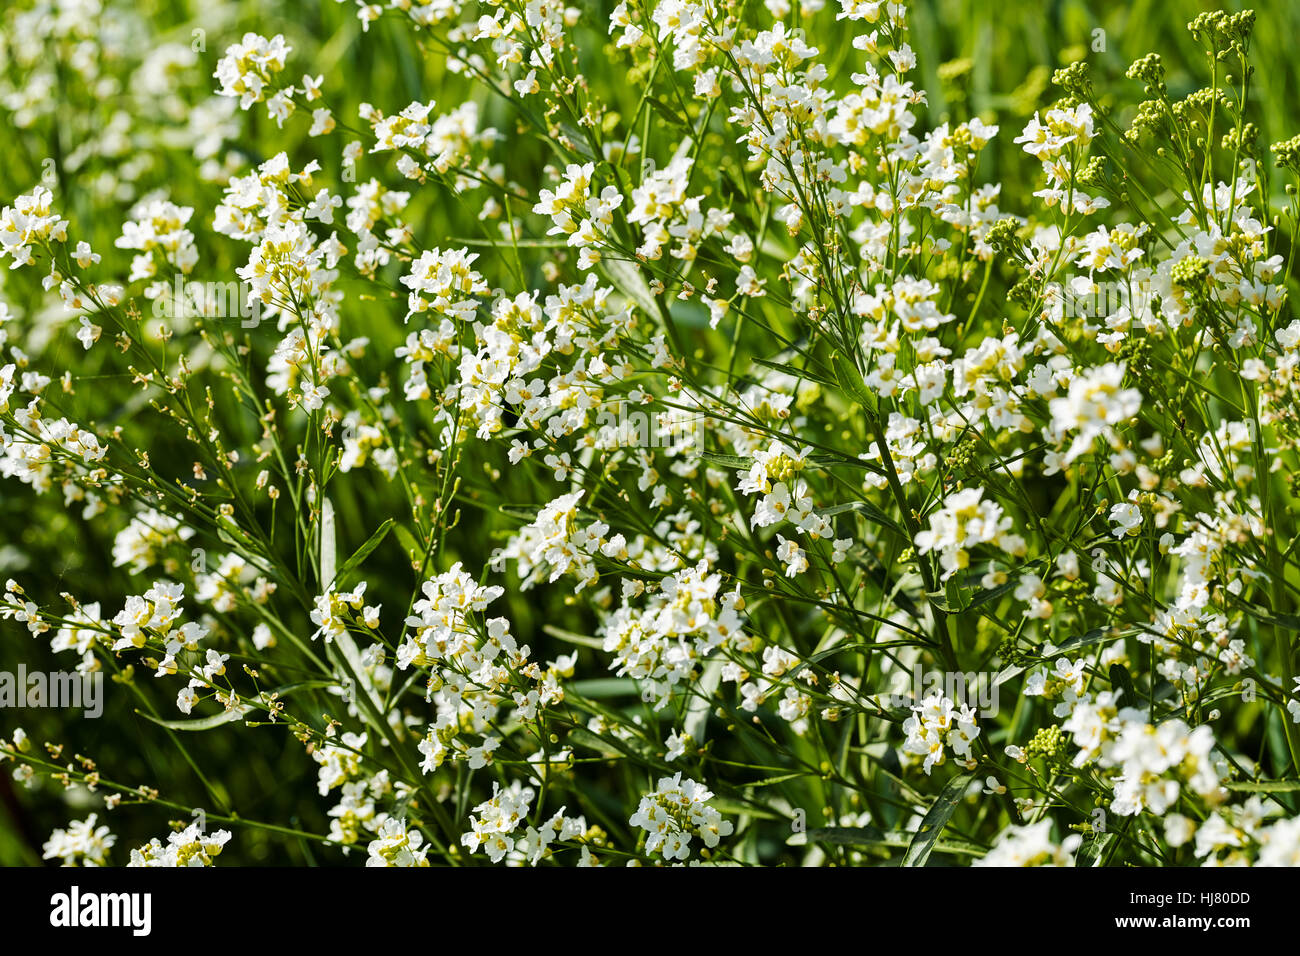 Kinds of small white flowers in the meadow note shallow depth of kinds of small white flowers in the meadow note shallow depth of field mightylinksfo Choice Image